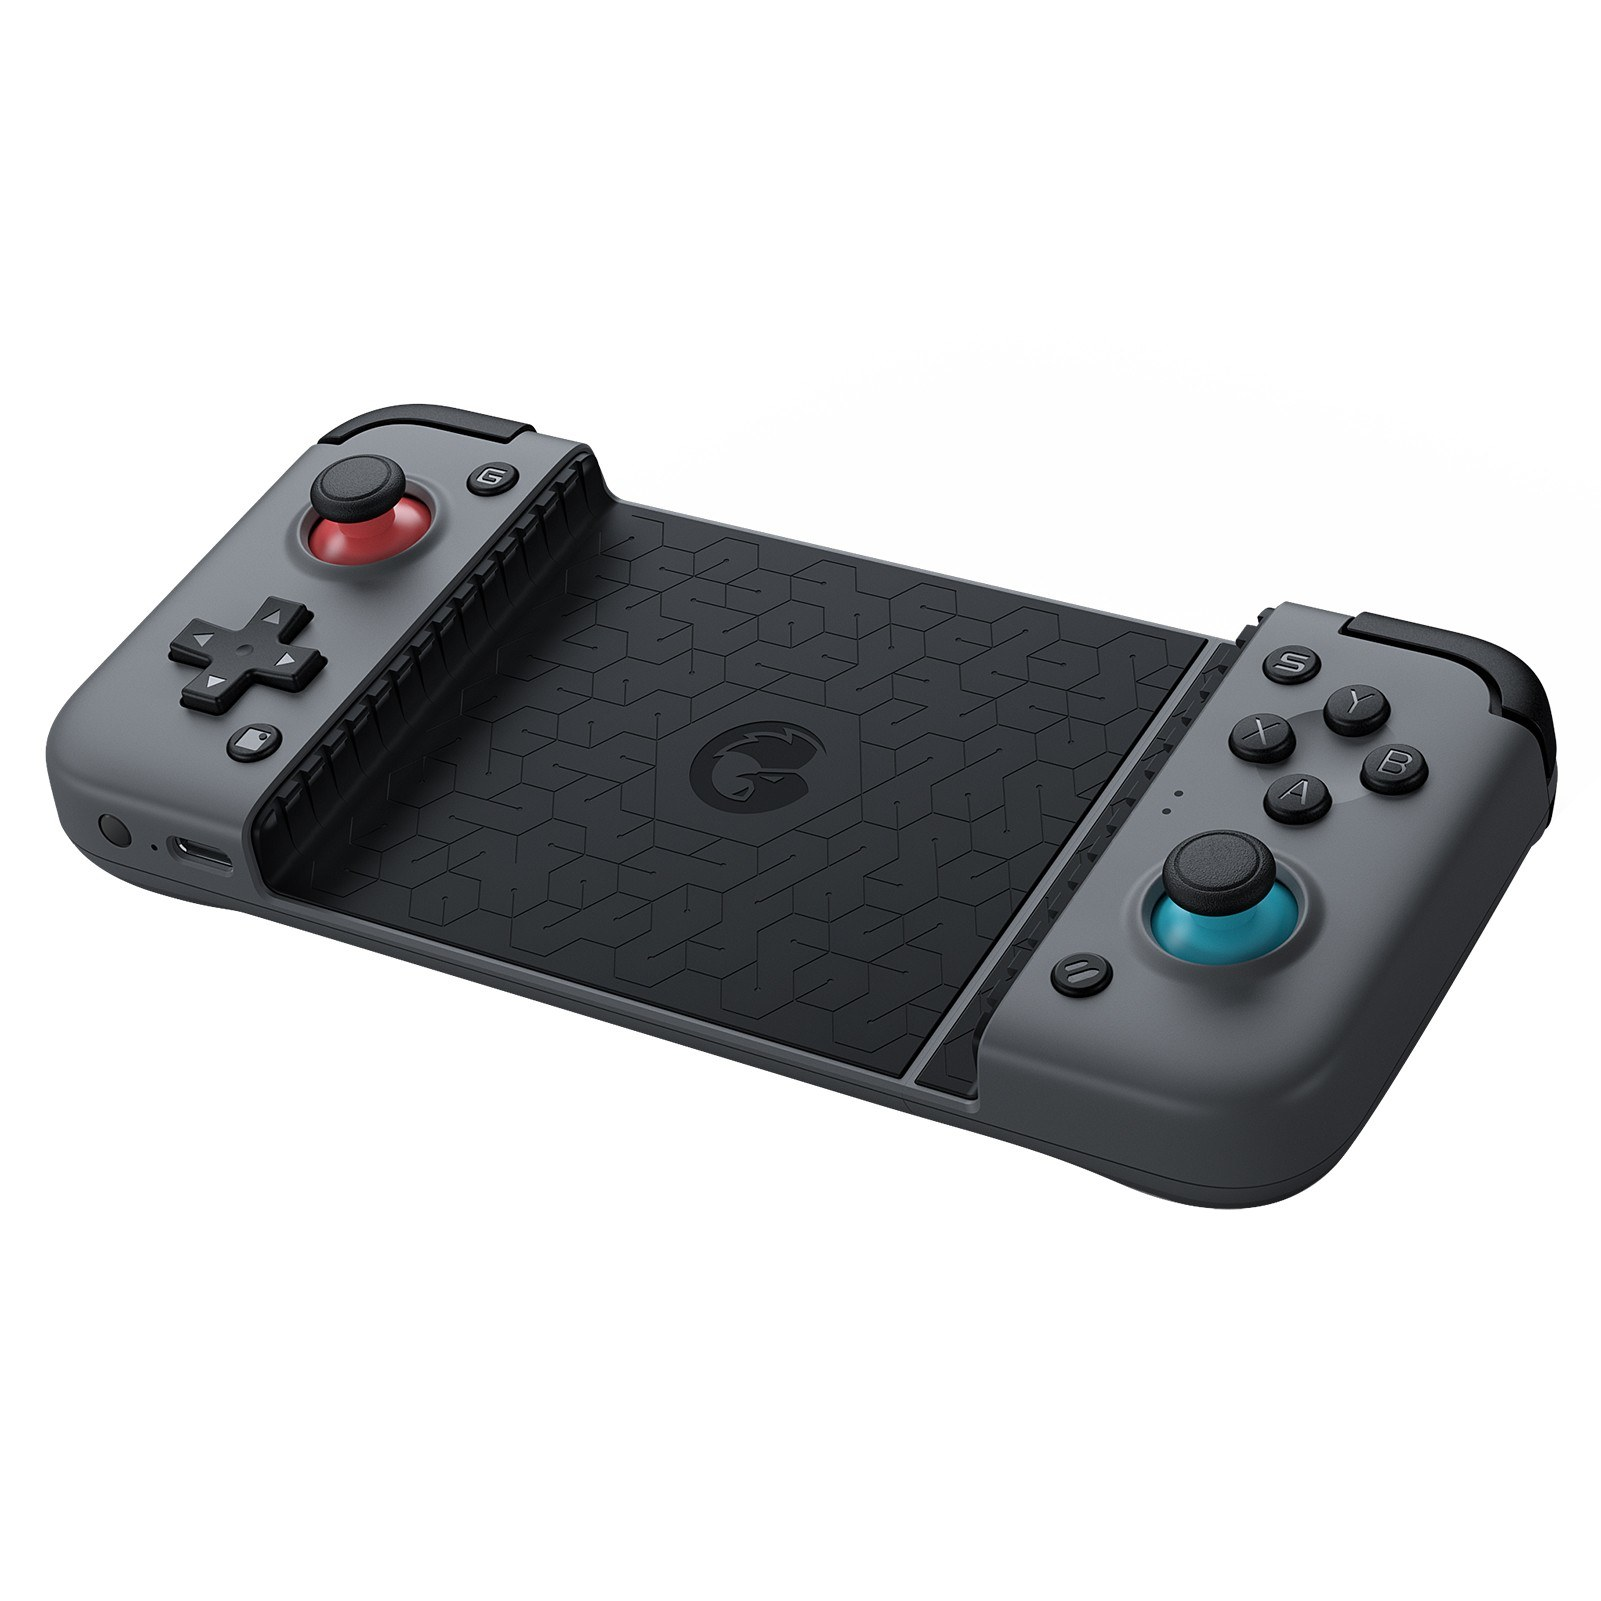 Tomtop - 55% OFF GameSir X2 BT Game Controller Wireless Mobile Game Gamepad, Free Shipping $59.99